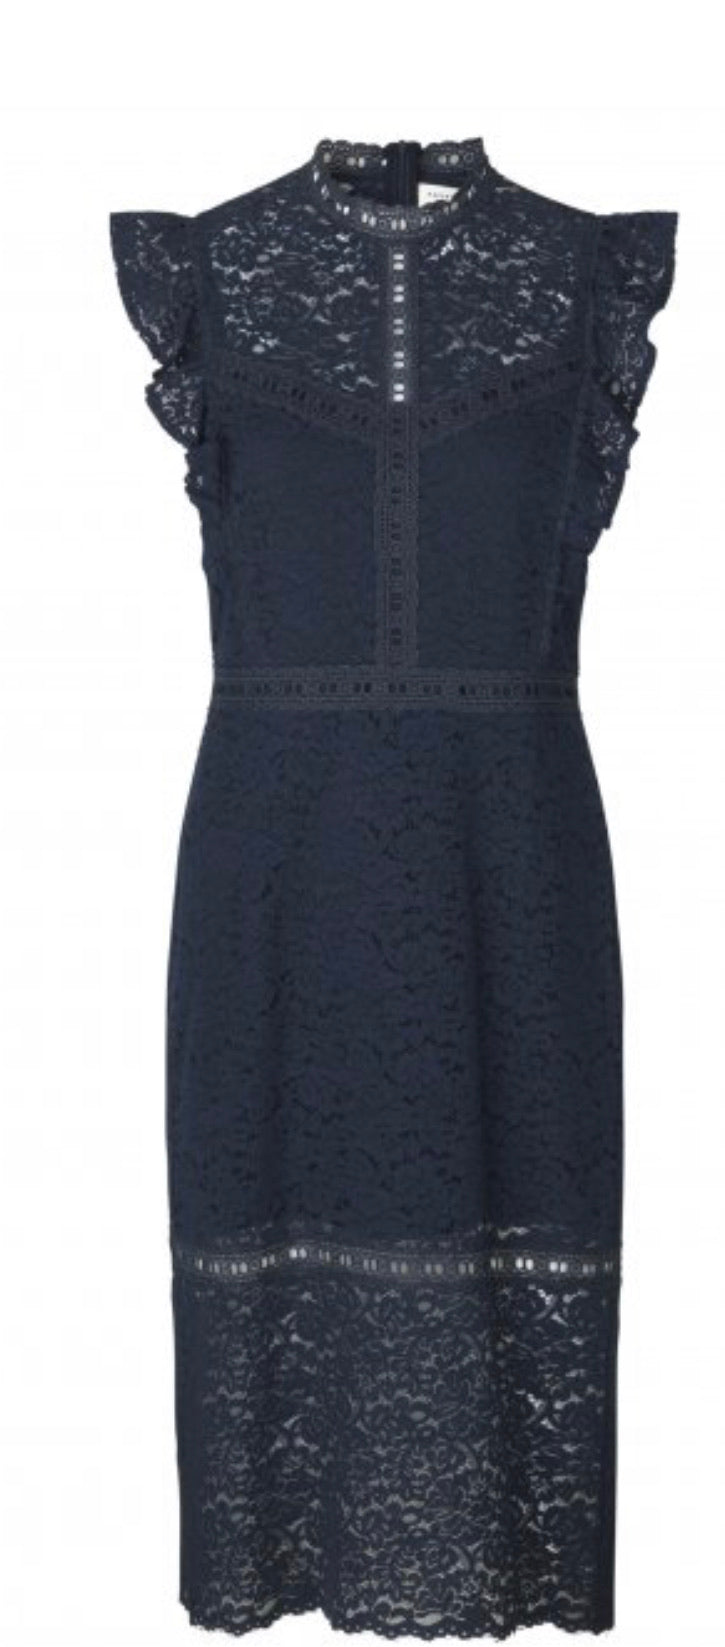 Lace Dress with High Neck Shoulder Detail